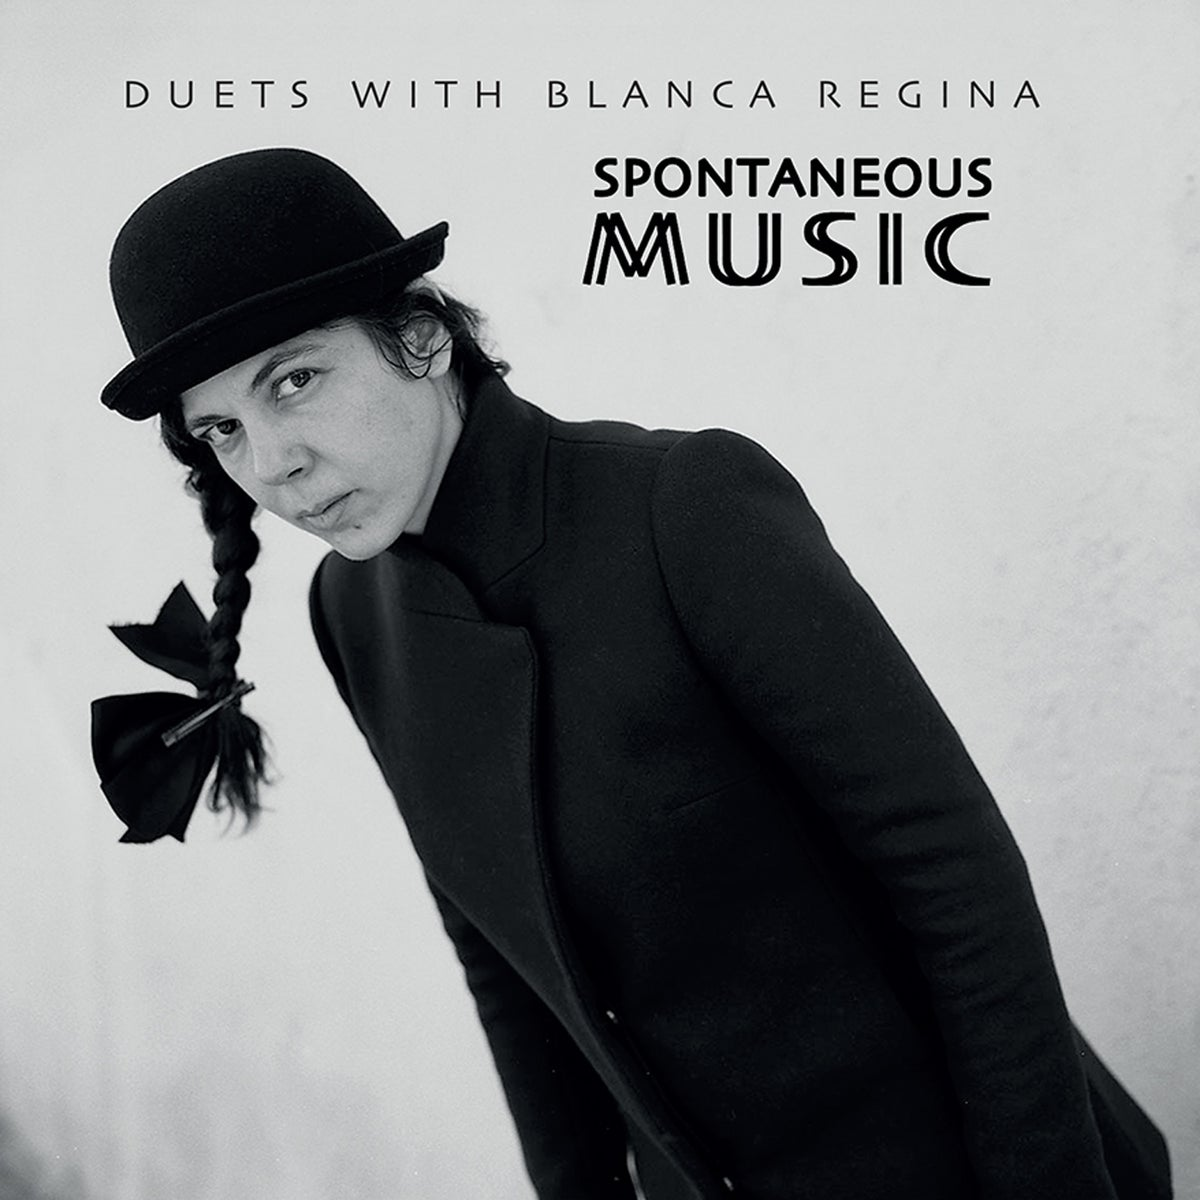 Duets with Blanca Regina. Spontaneous Music - Audio CD